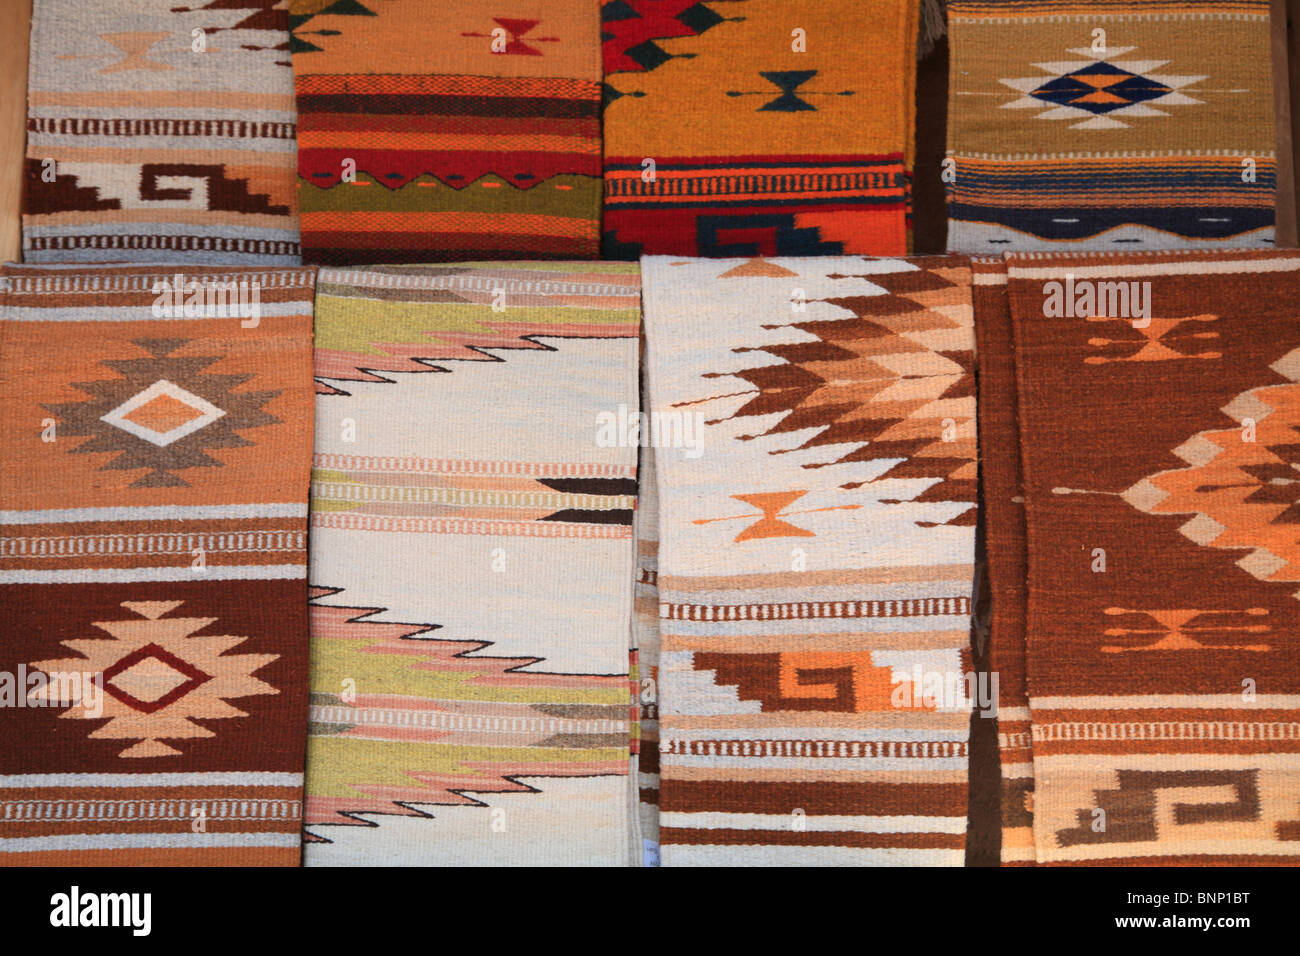 Native American Blanket High Resolution Stock Photography